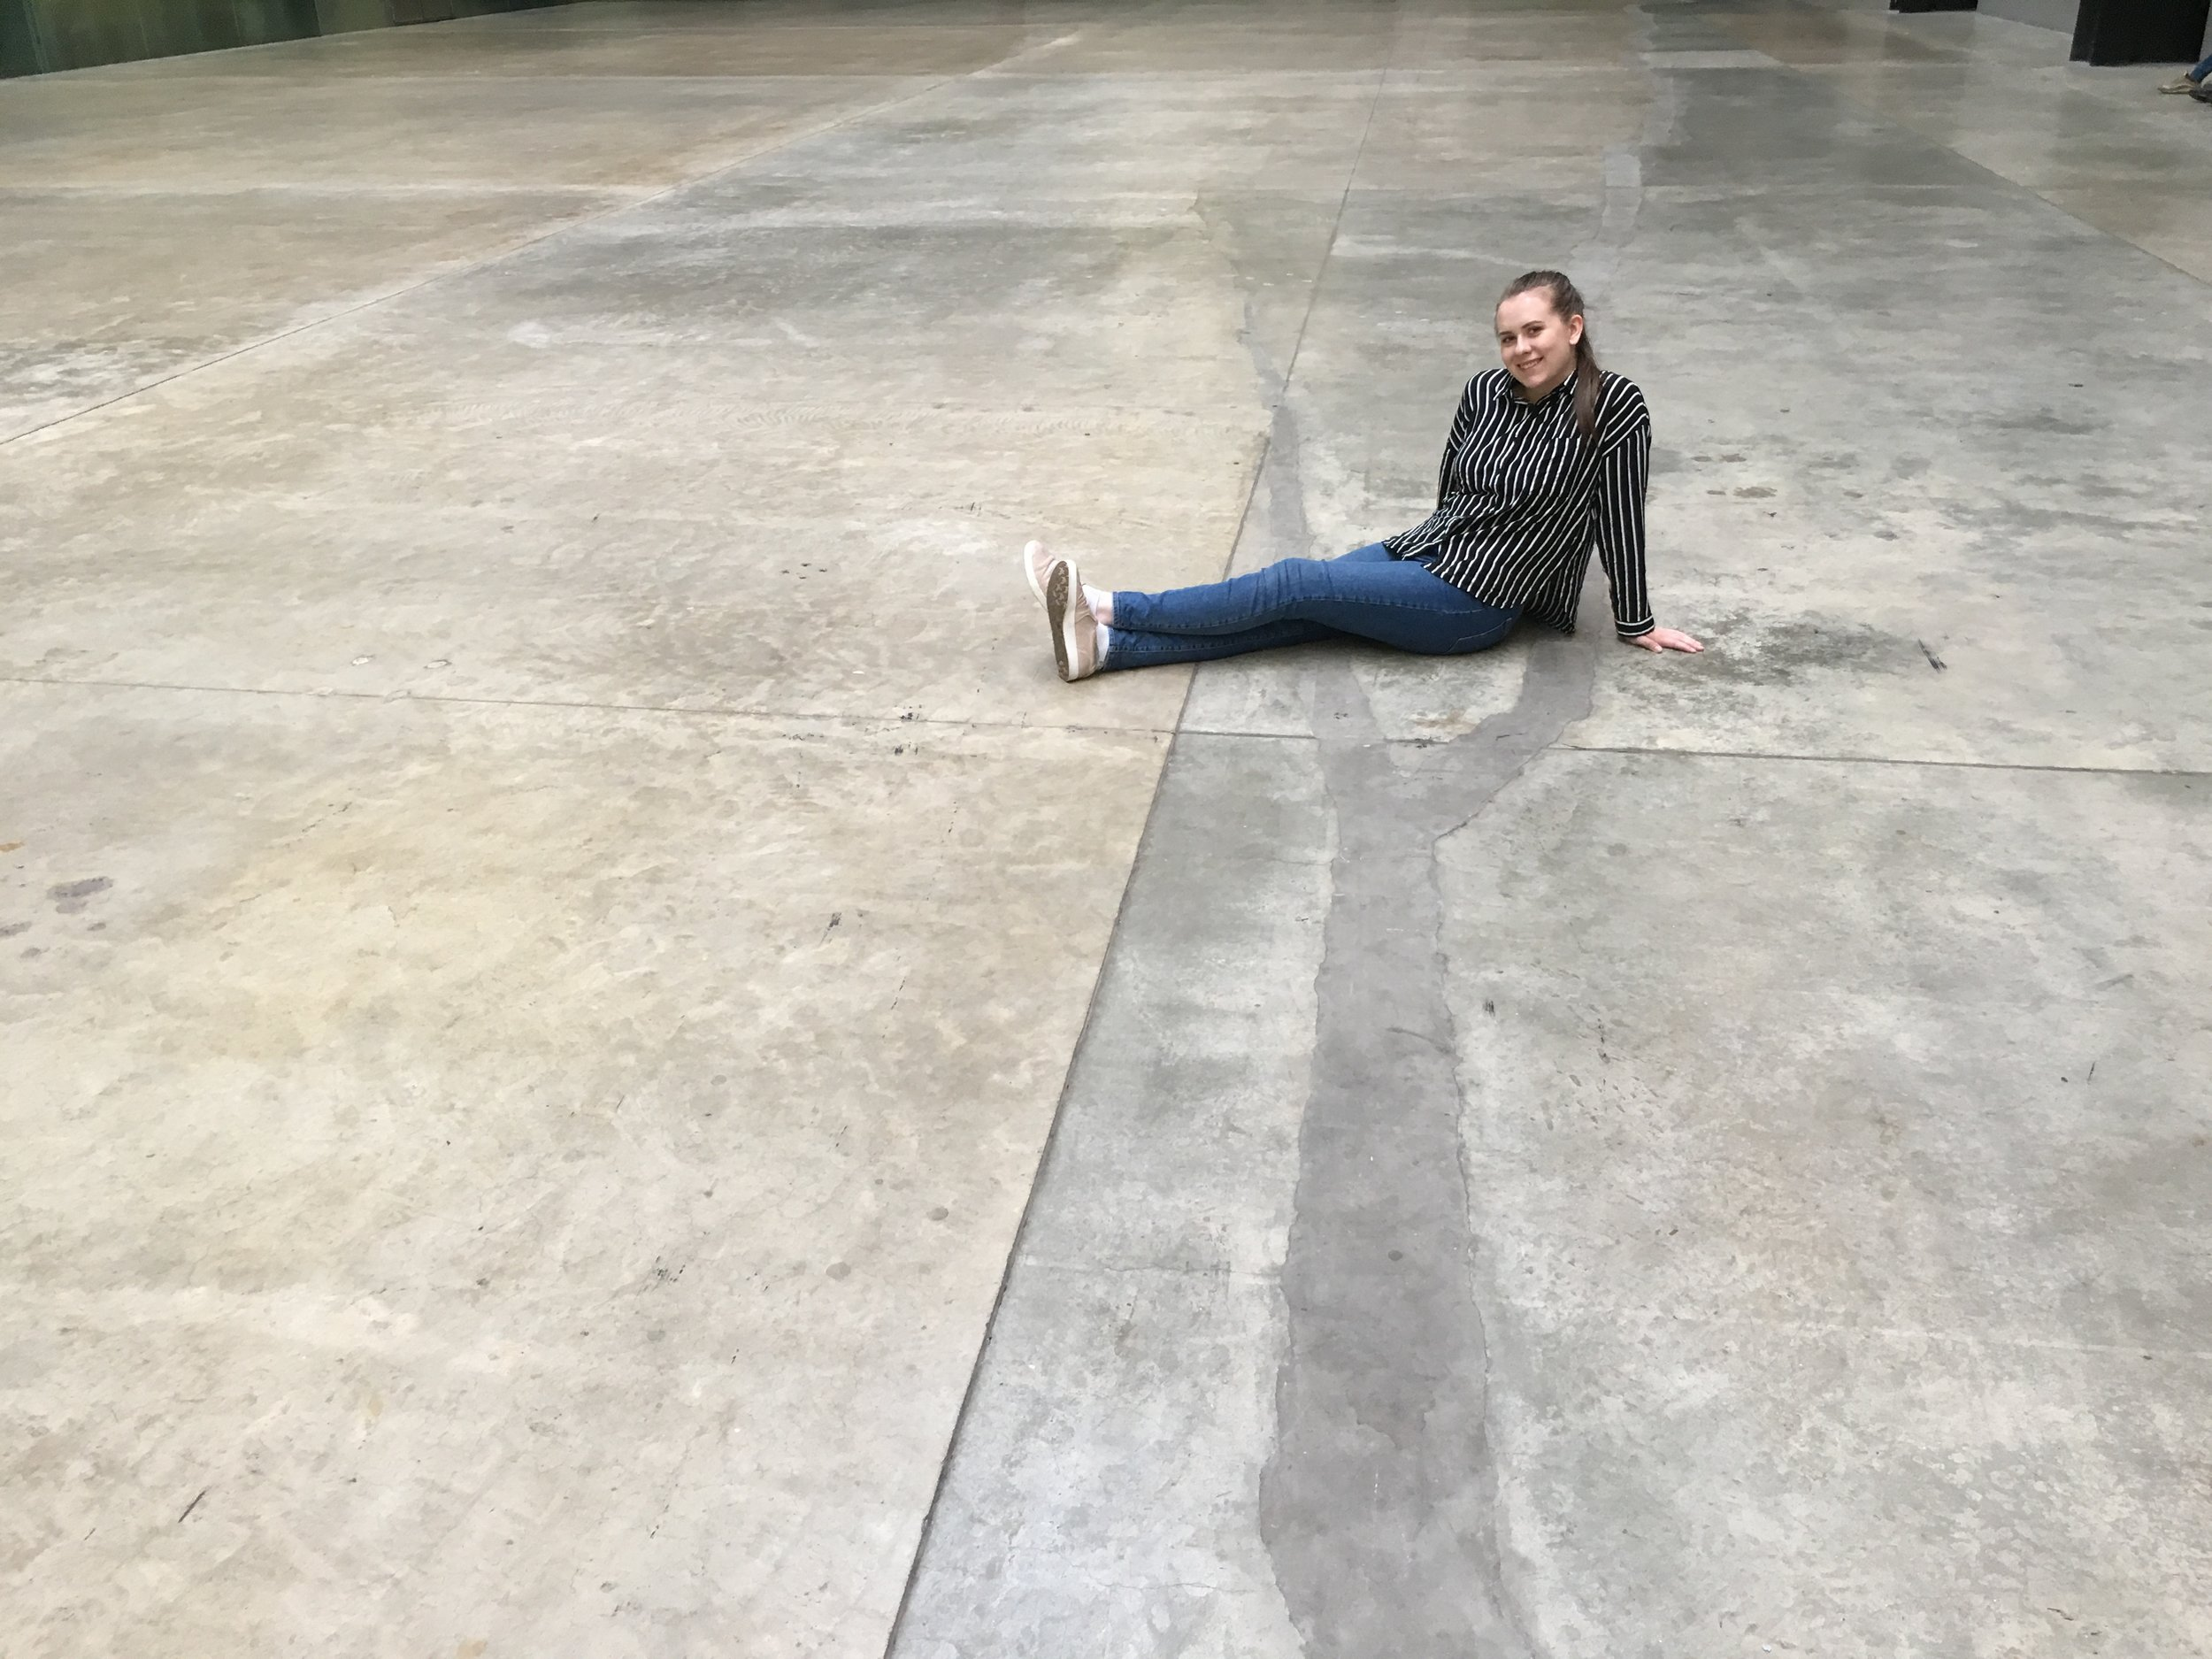 Alison pictured in the Tate Modern's Turbine Hall sitting on the scar left behind by Doris Salcedo's large scale project  Shibboleth II  (2007).